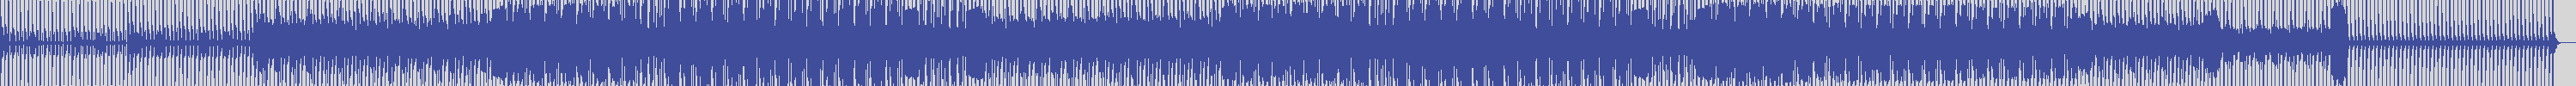 just_digital_records [JS1316] 40 Drums - Power Extreme [Power Bass] audio wave form